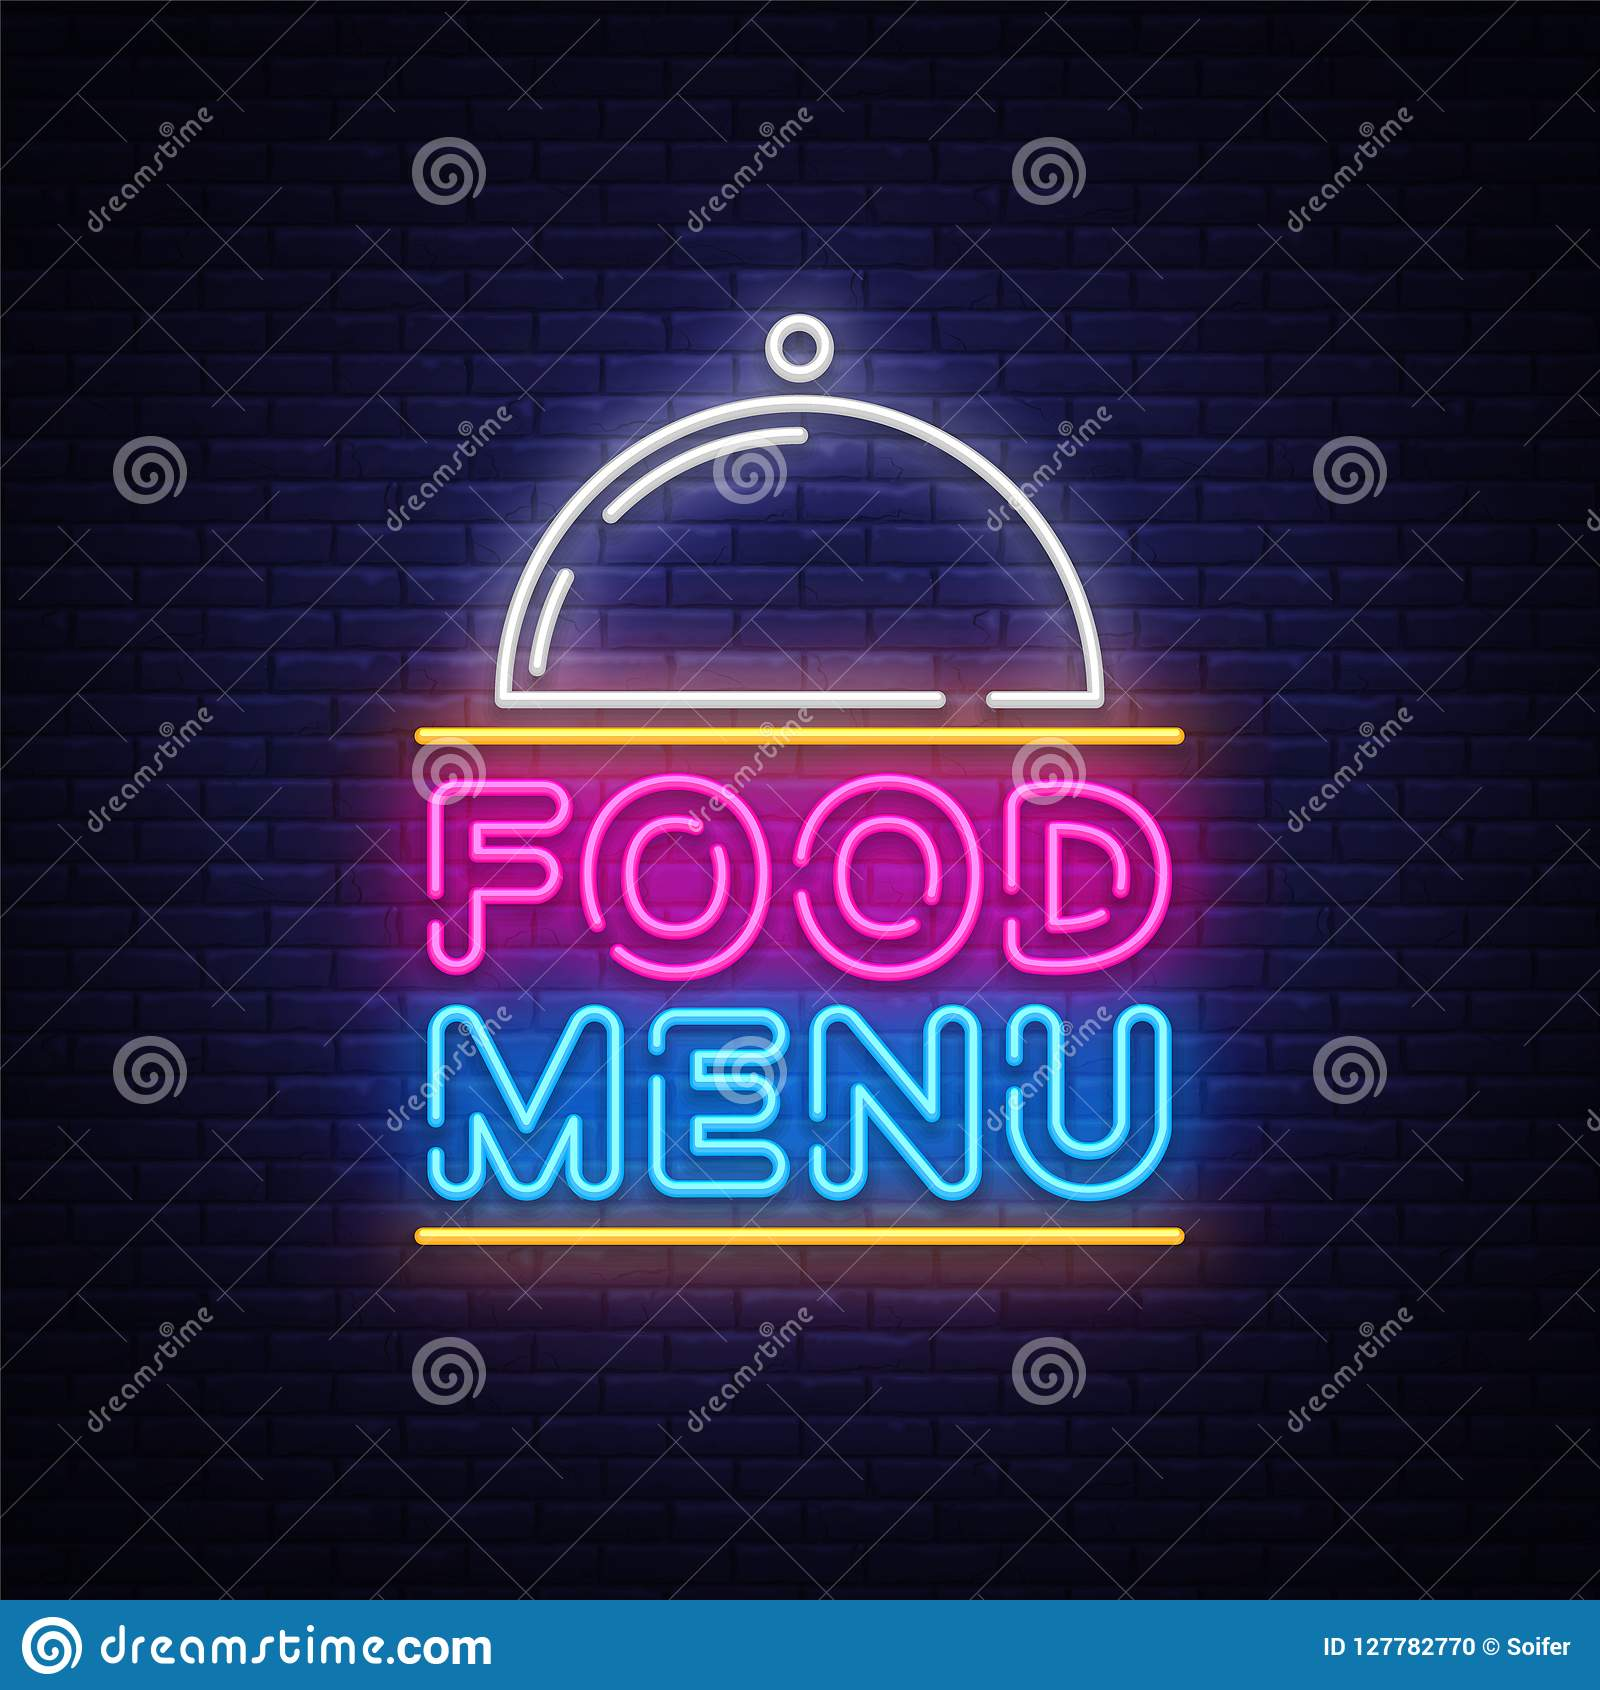 Food Menu Neon Sign Vector. Restaurant Menu Neon Sign, Design Template,  Modern Trend